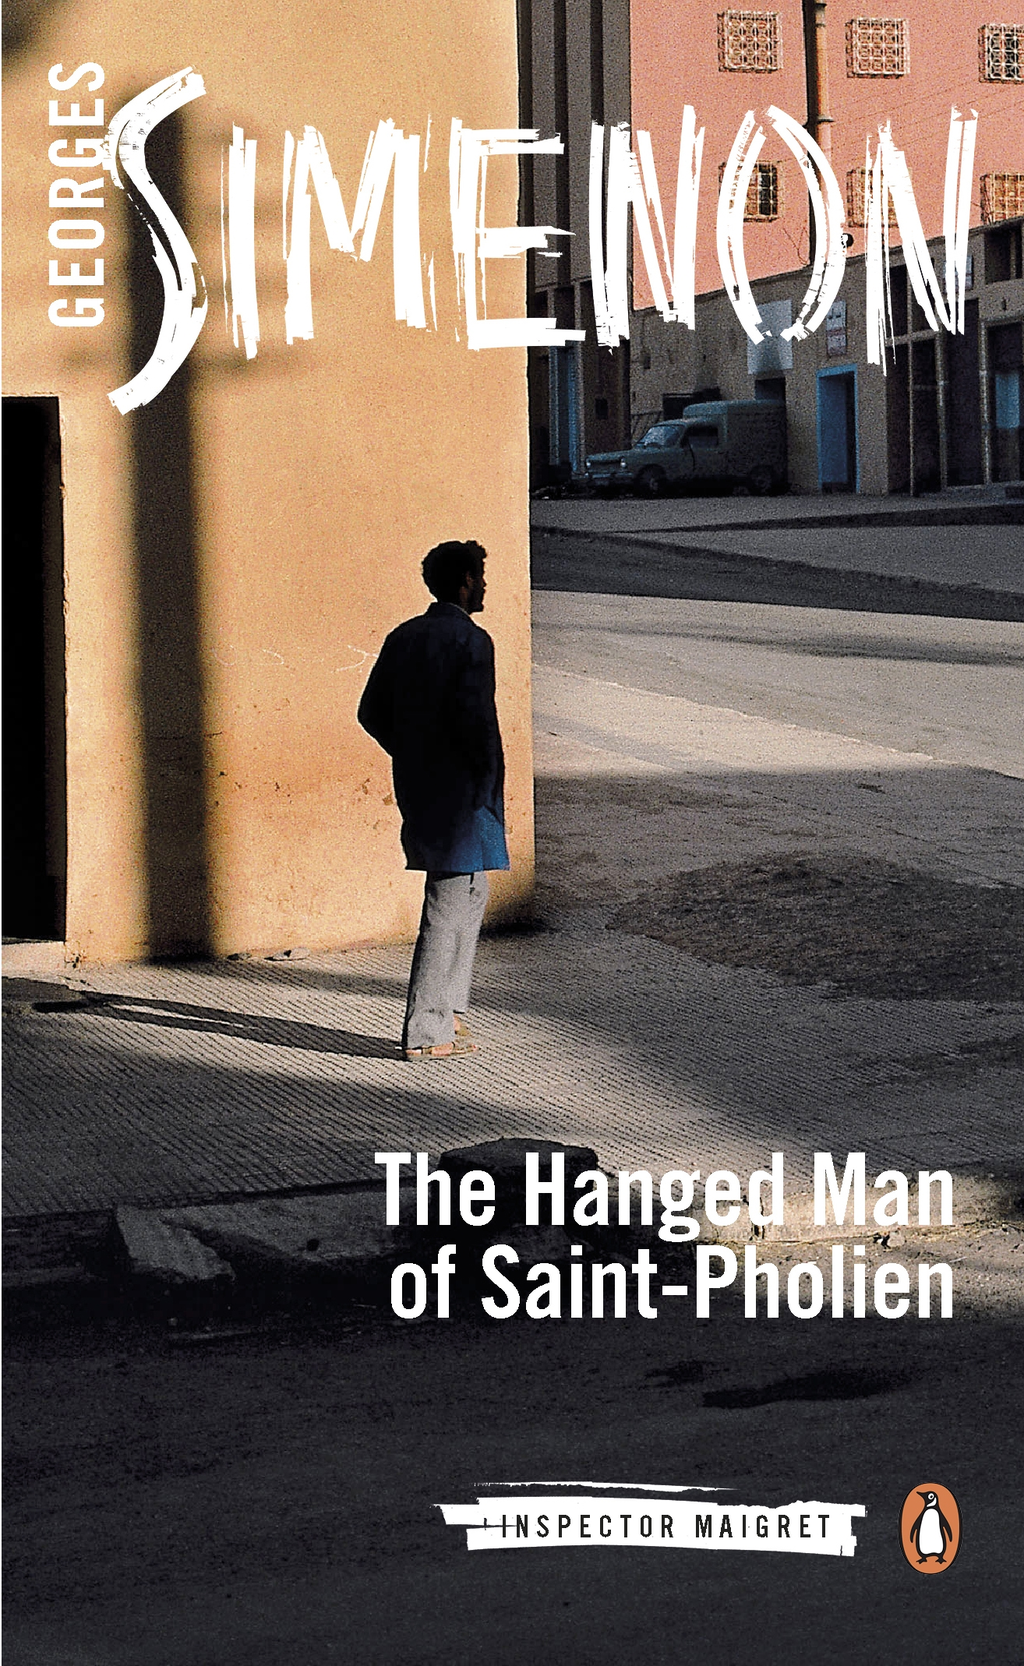 The Hanged Man of Saint-Pholien Inspector Maigret #3